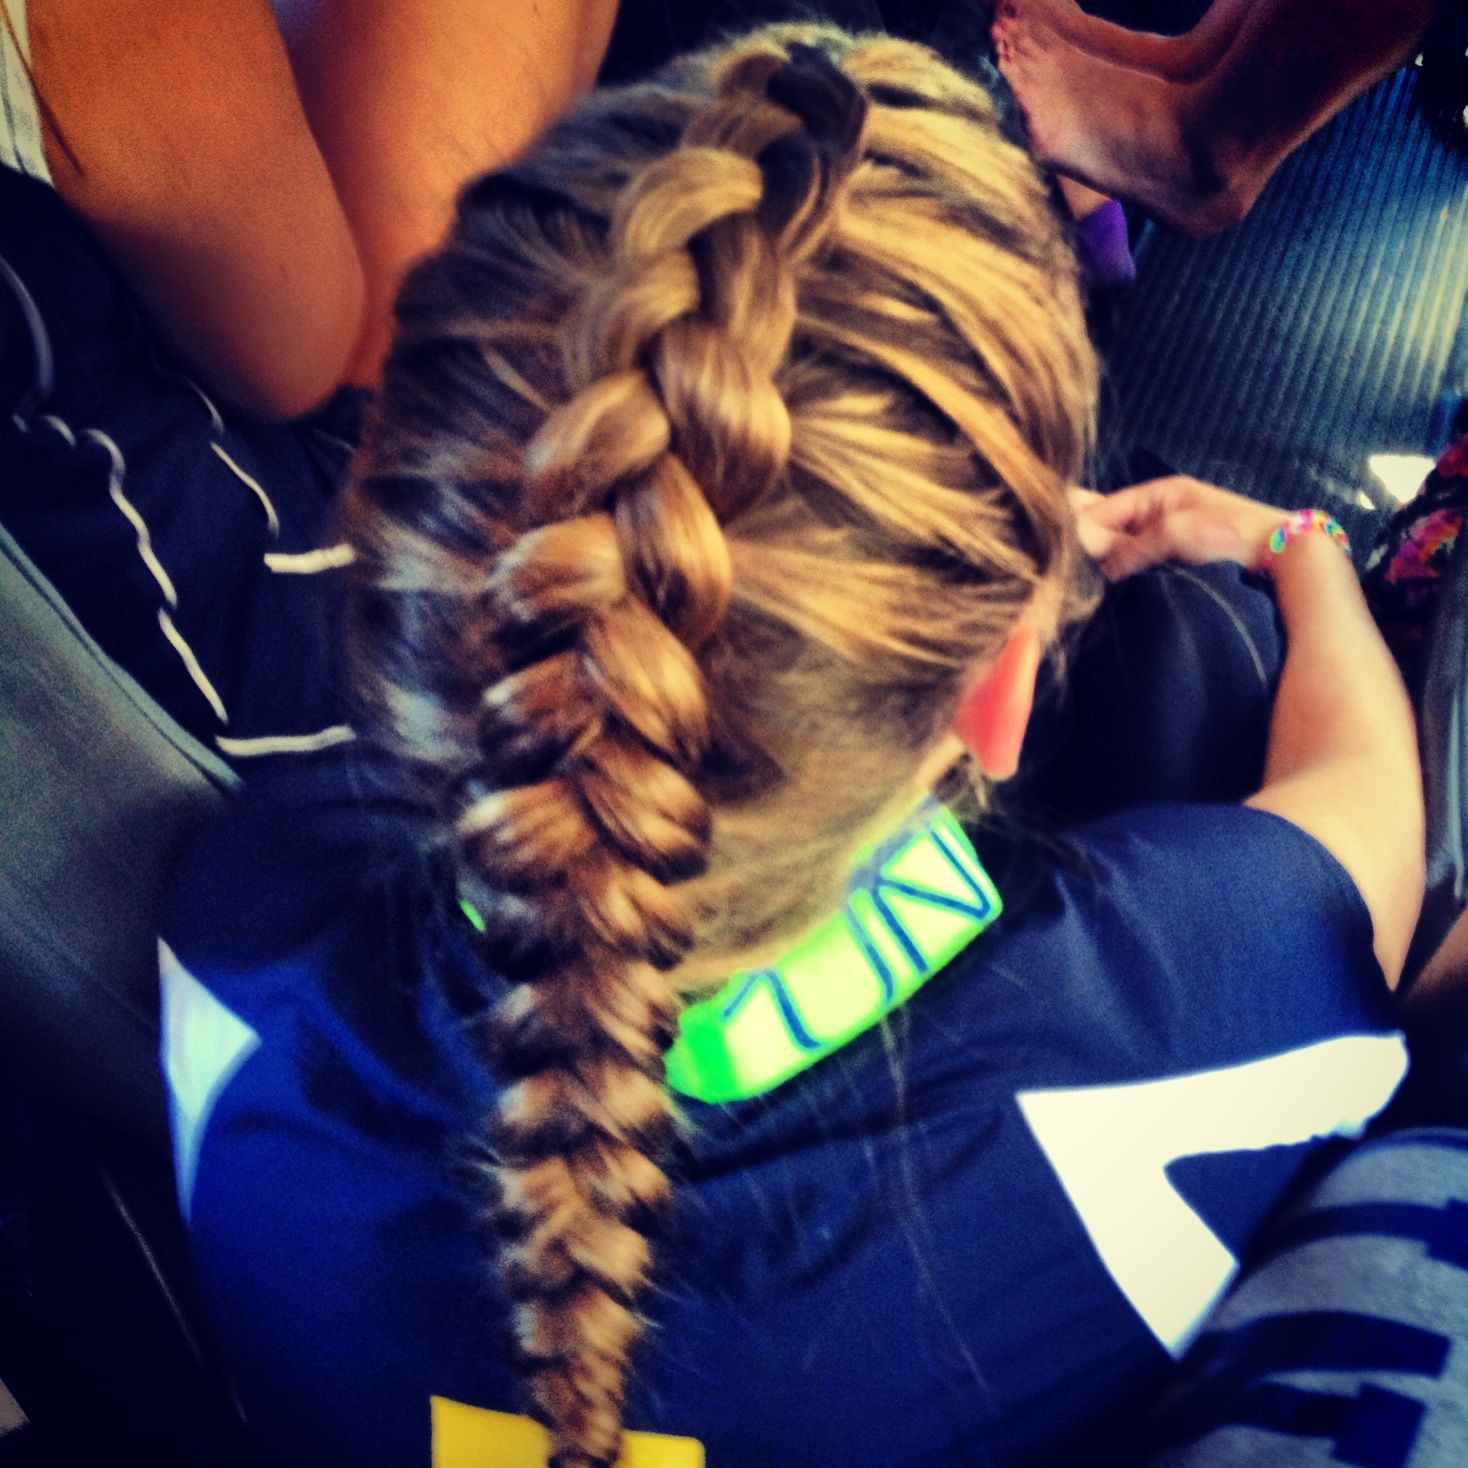 a good hairstyle for when you gals are playing sports; keeps